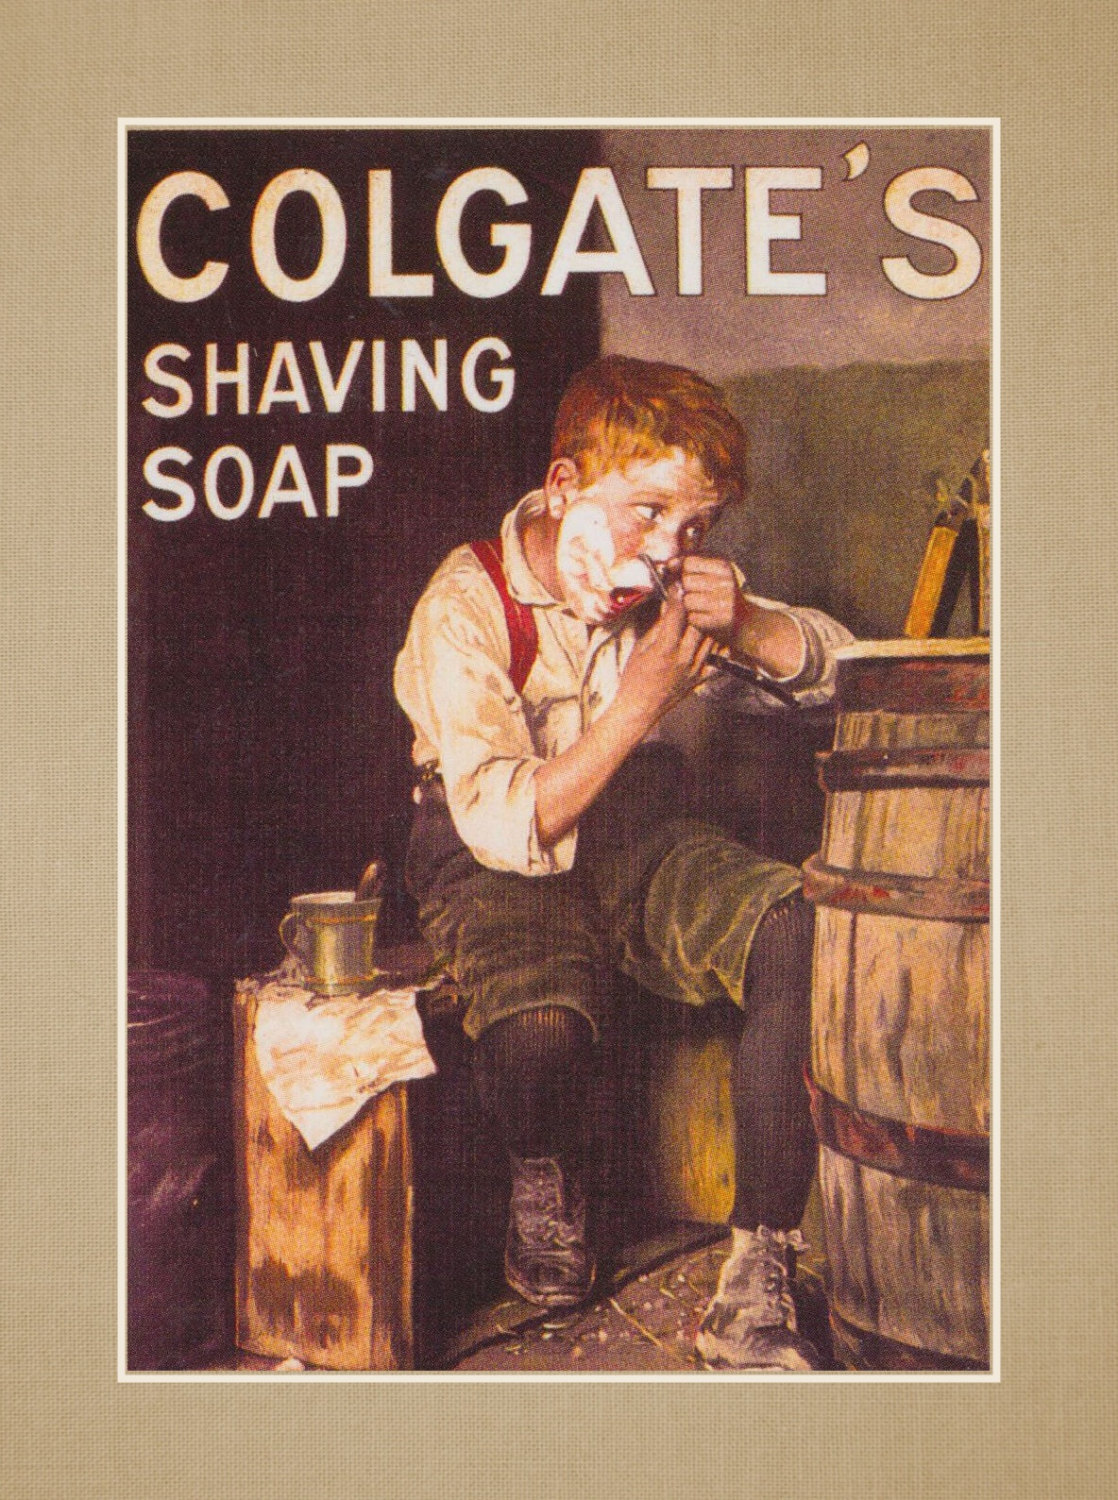 Colgate Shaving Soap Vintage Wall Art Gift Manly Bathroom Decor Masculine Poster 8x10 11x14 Free Ship